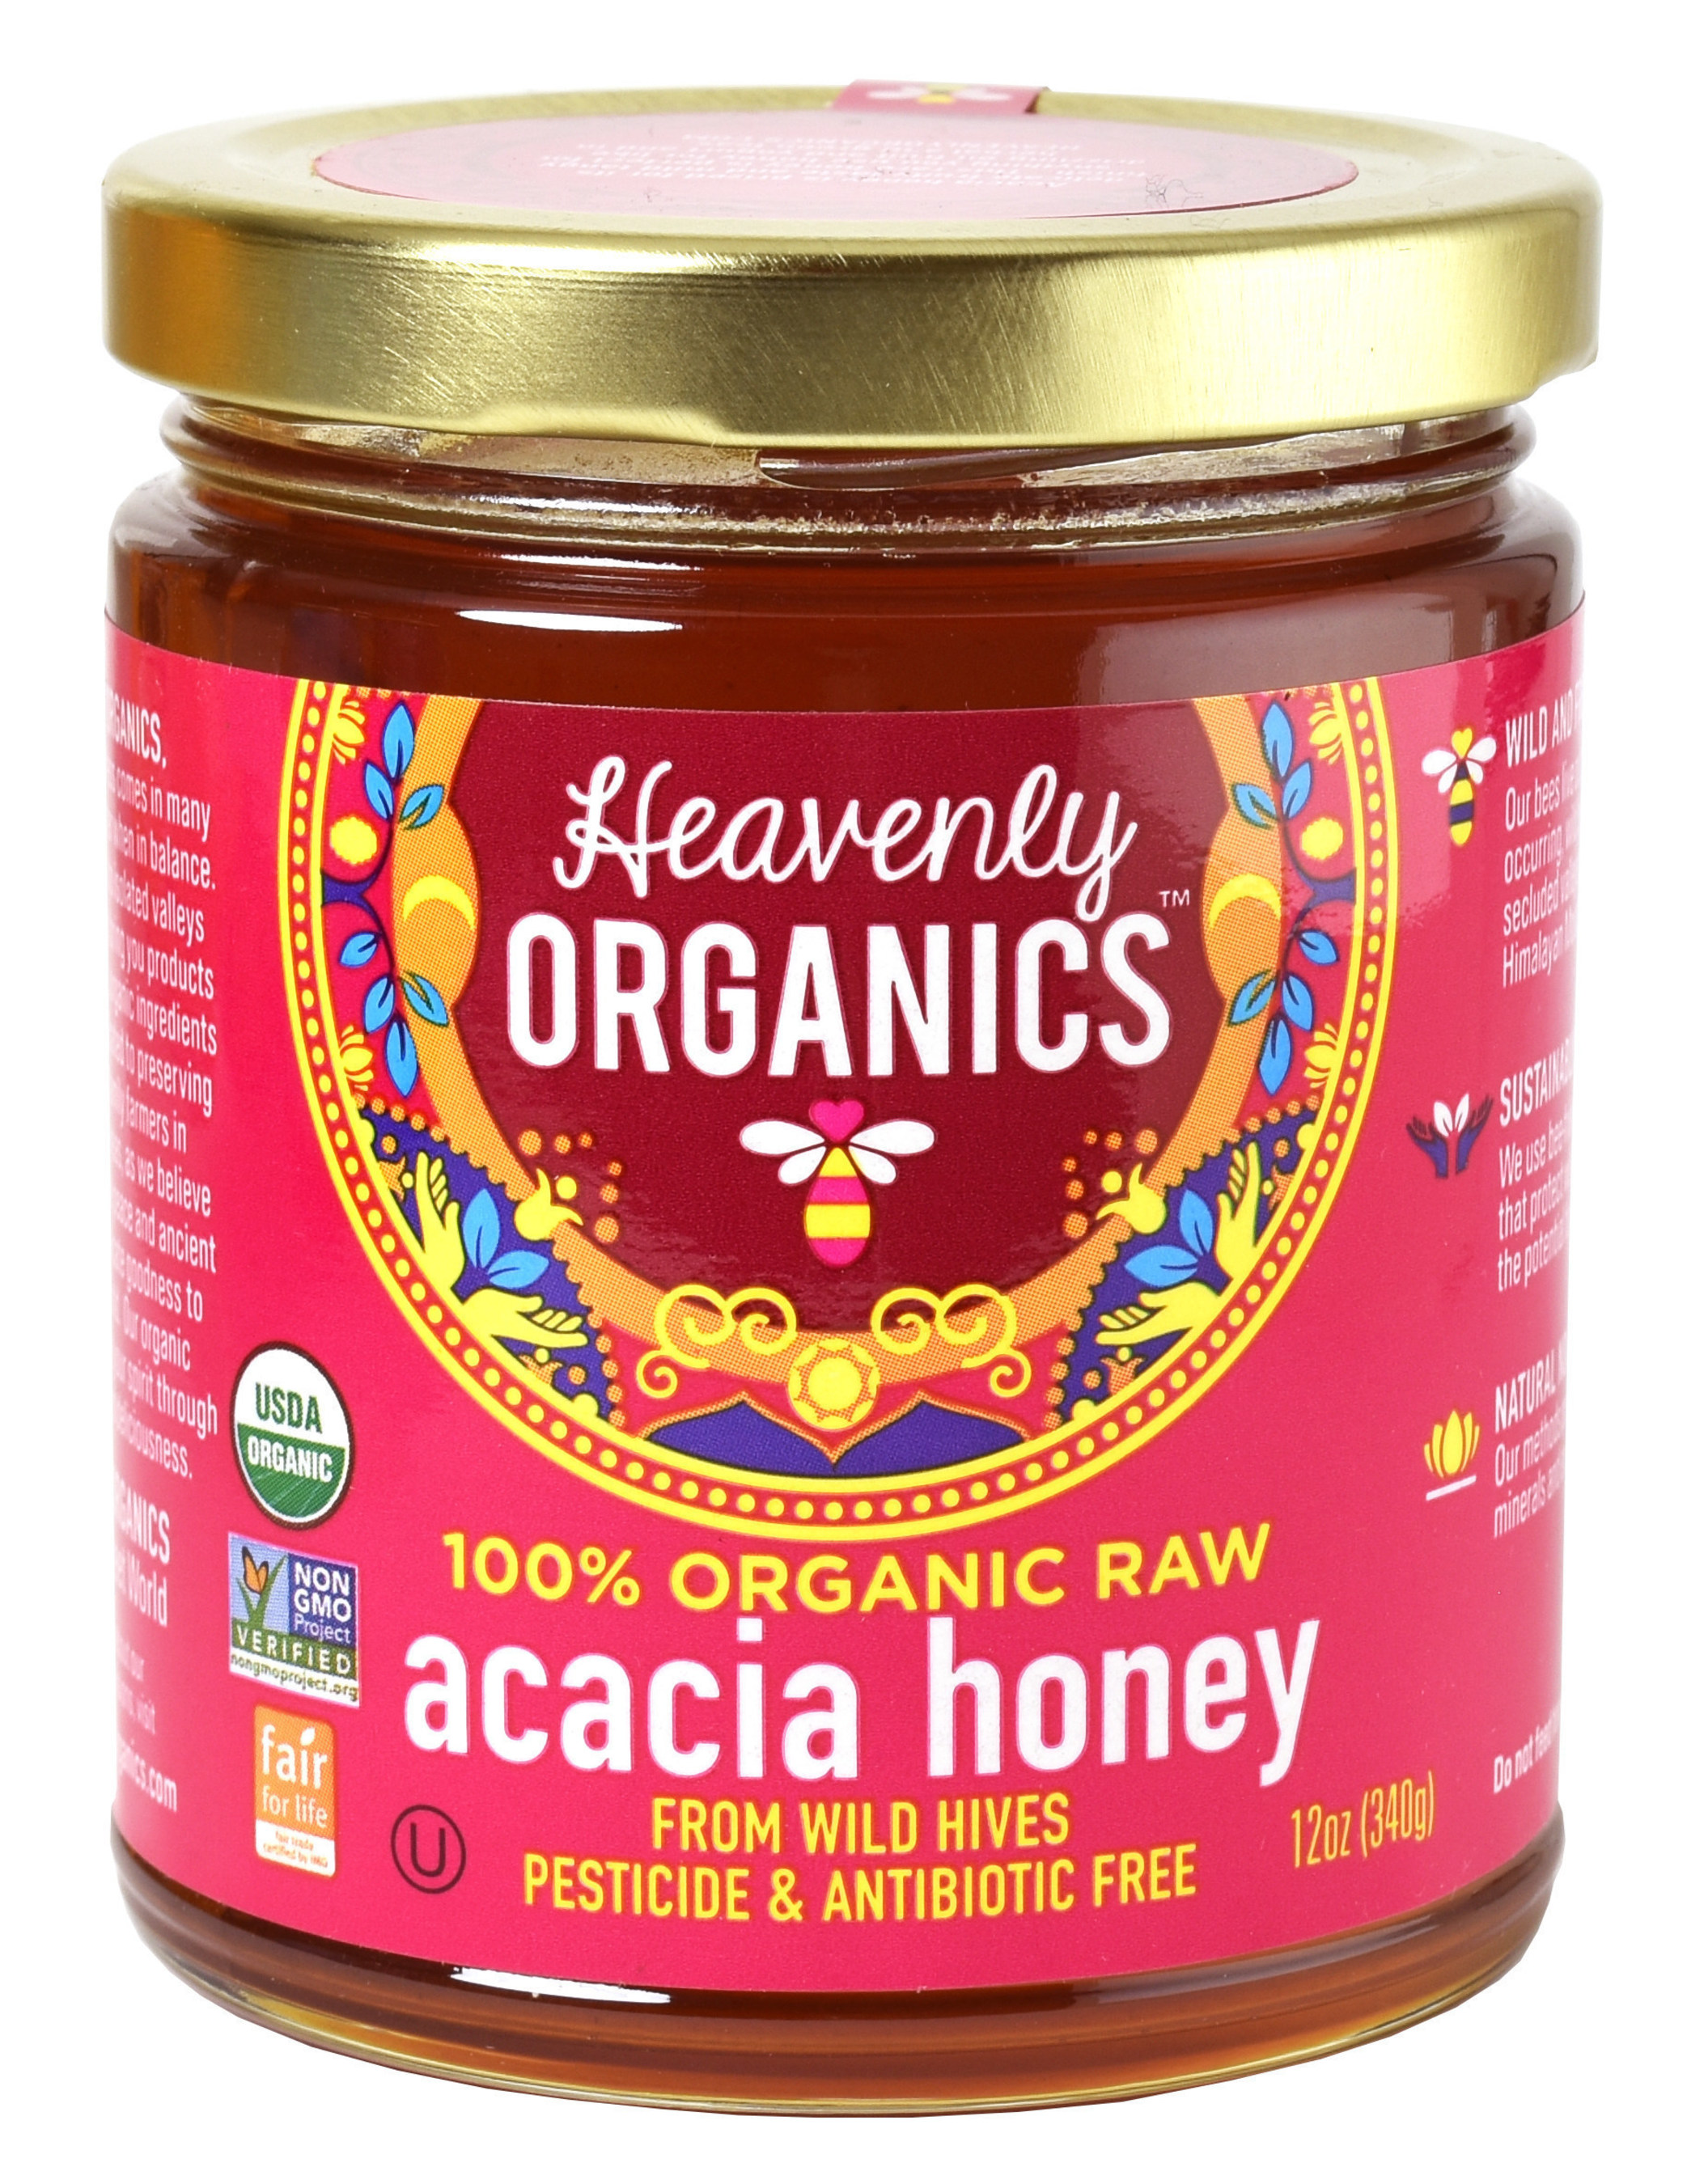 Heavenly Organics 100% Organic, Raw, Pesticide and Antibiotic Free Acacia Honey from Wild Beehives